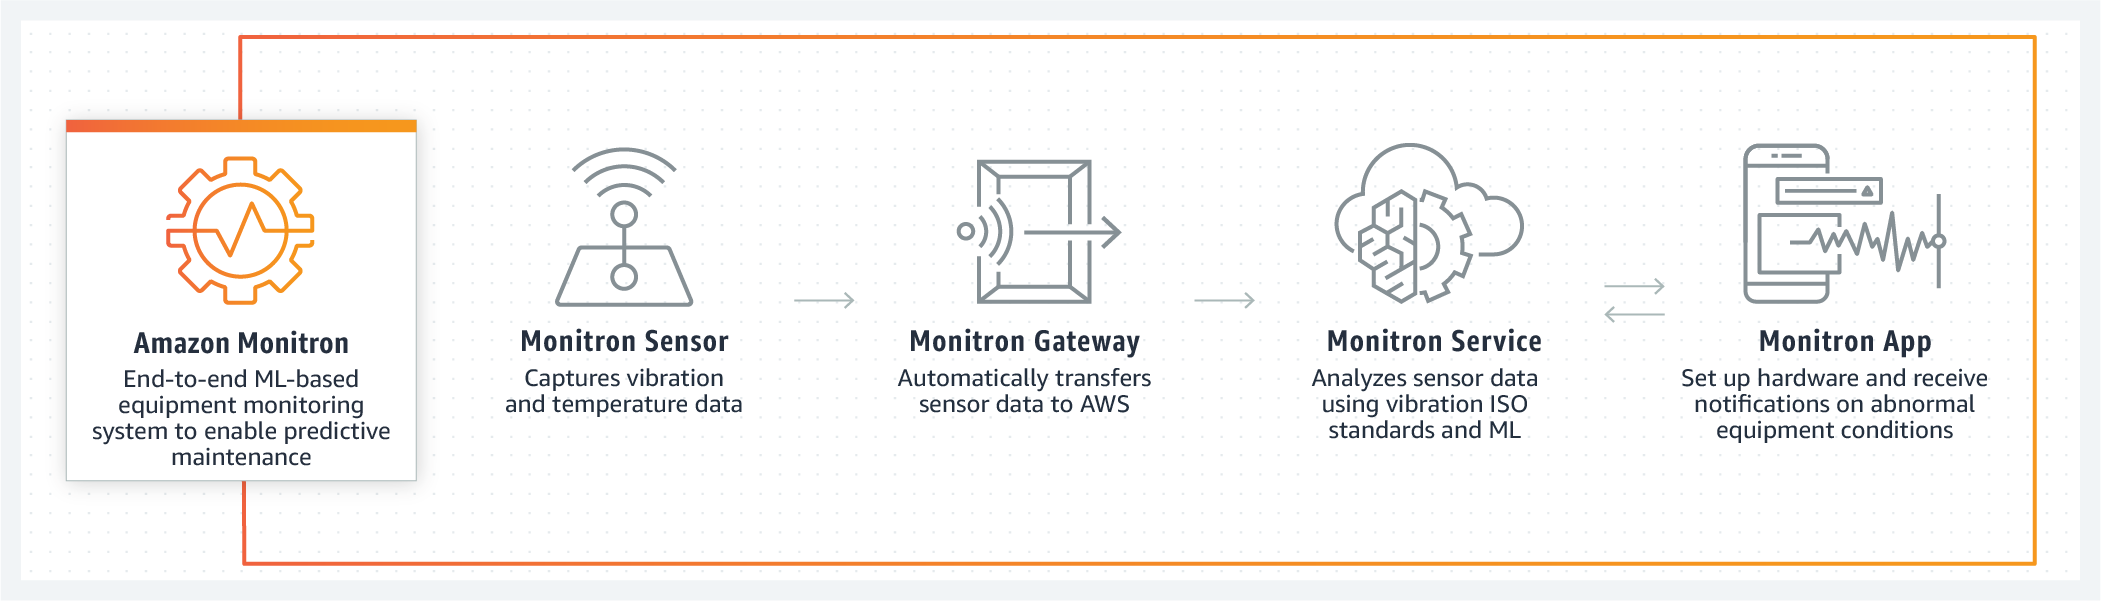 How Amazon Monitron works